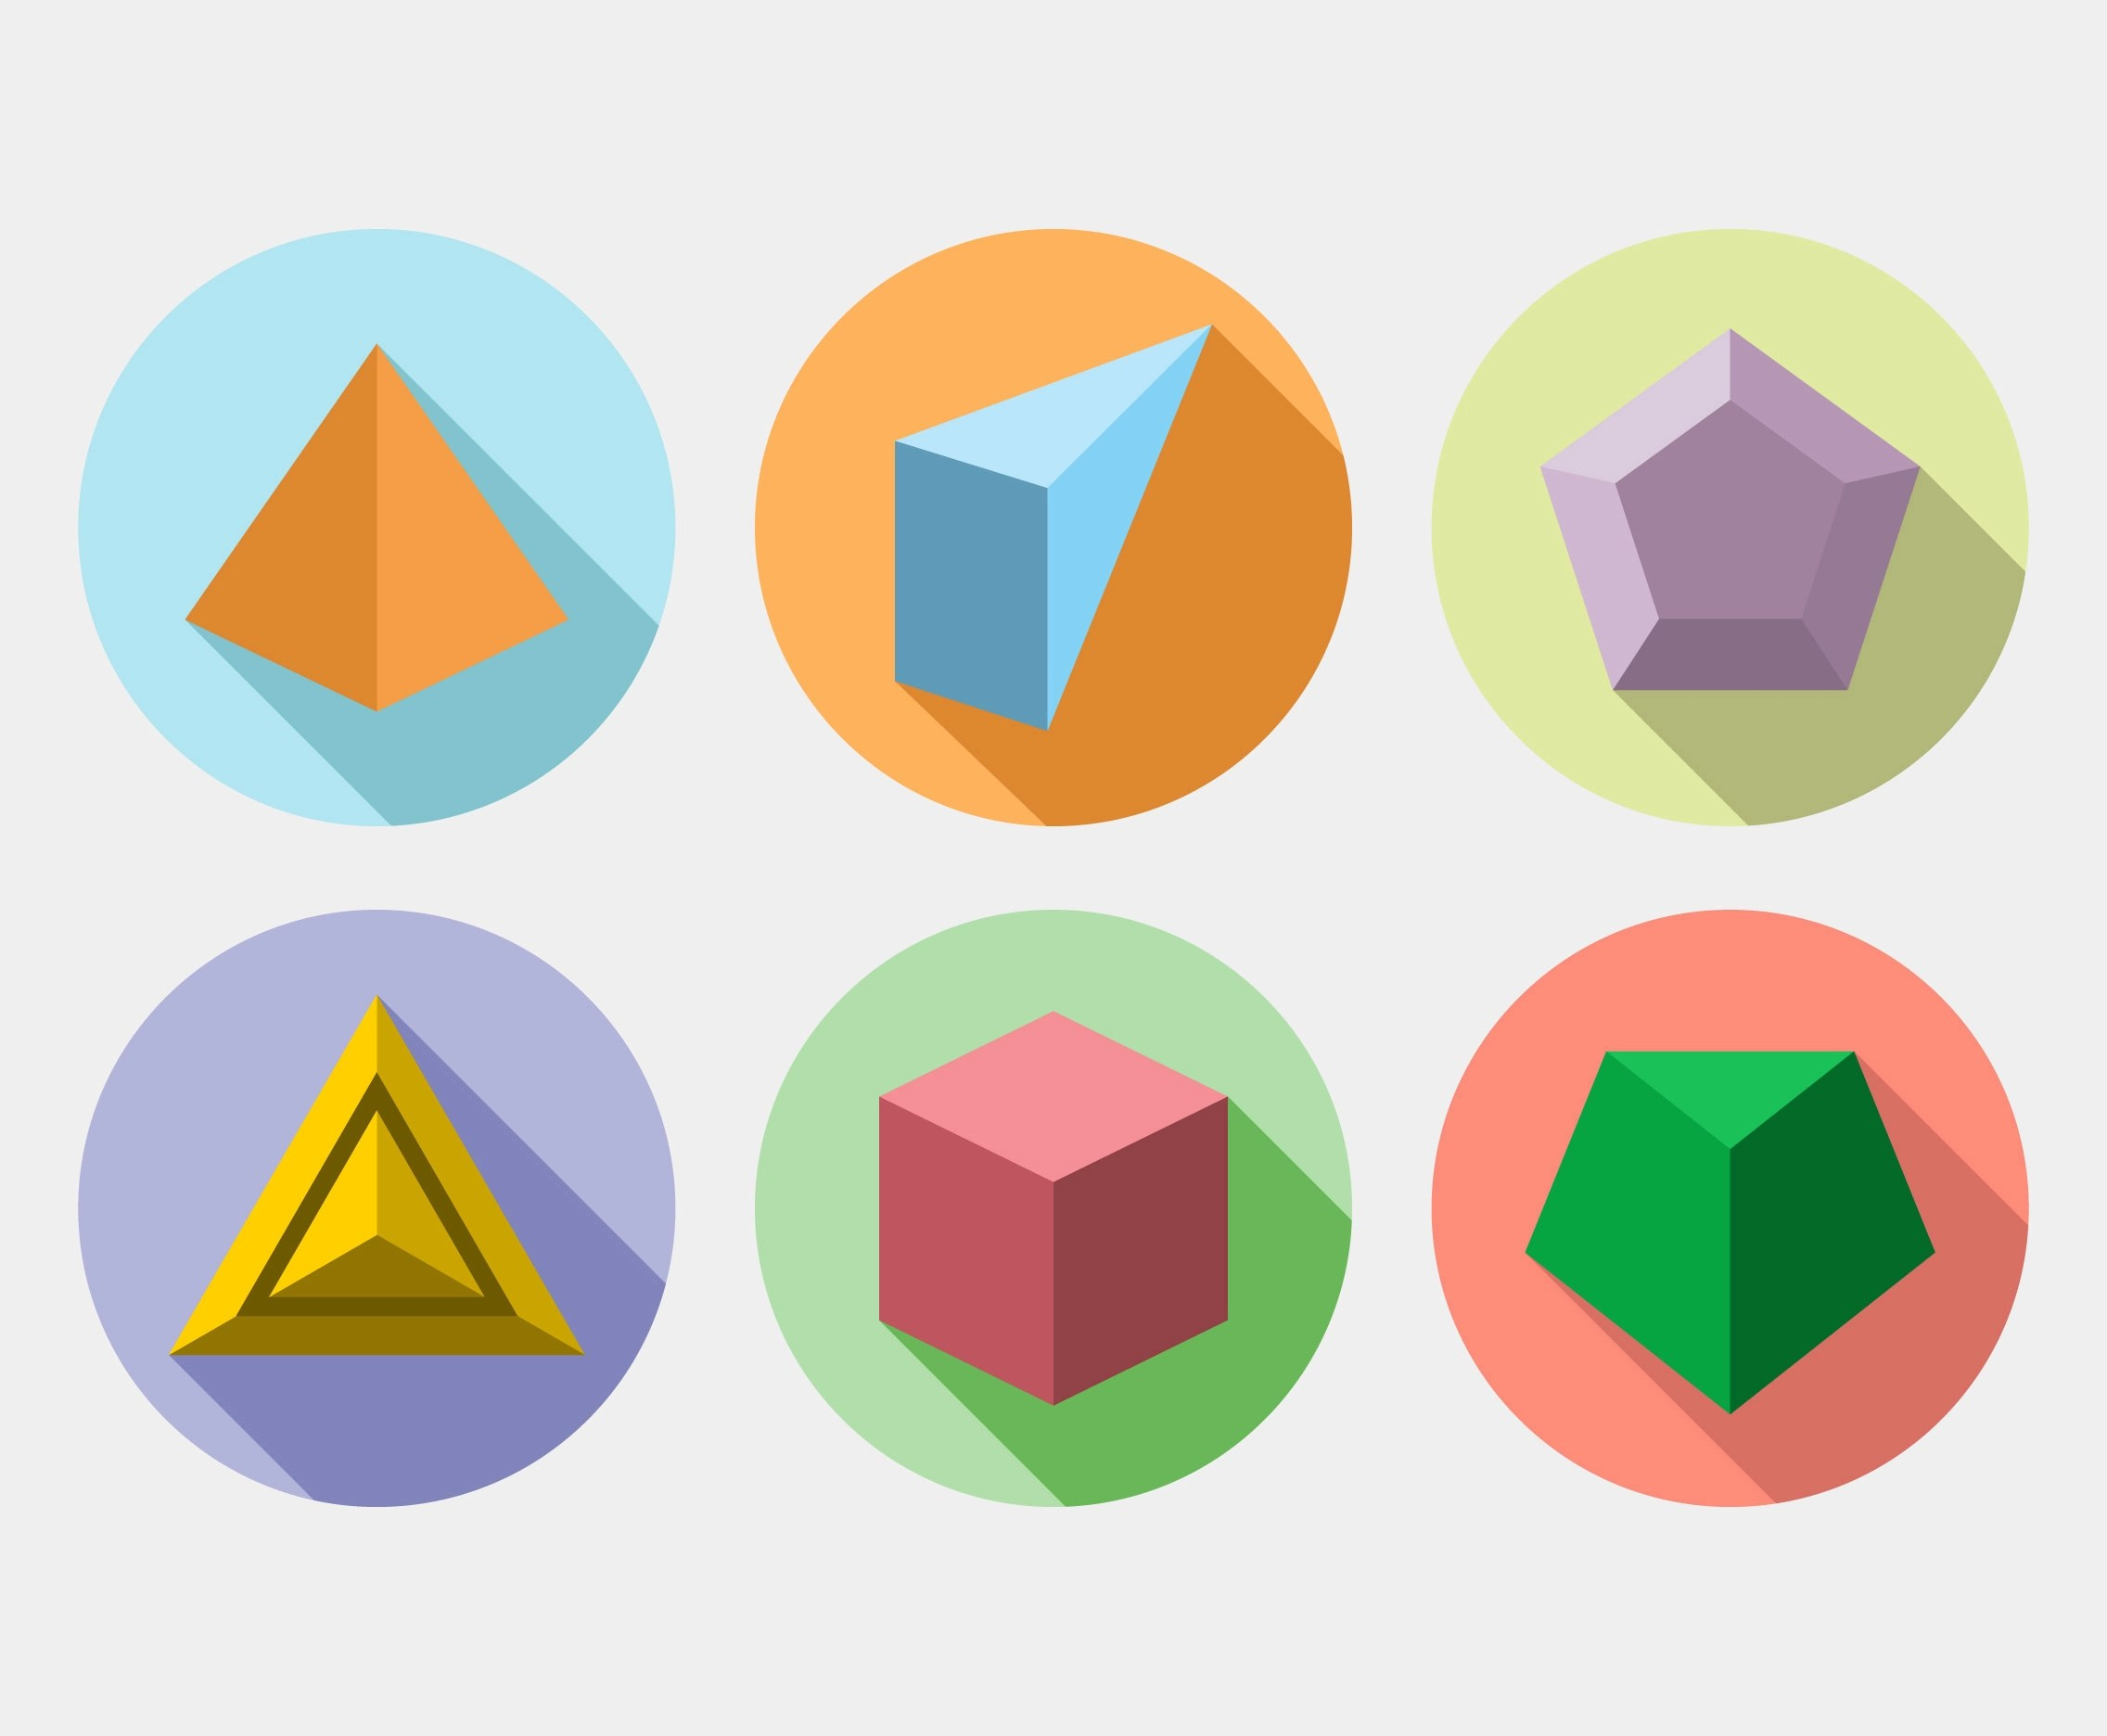 Solid Shapes Vector